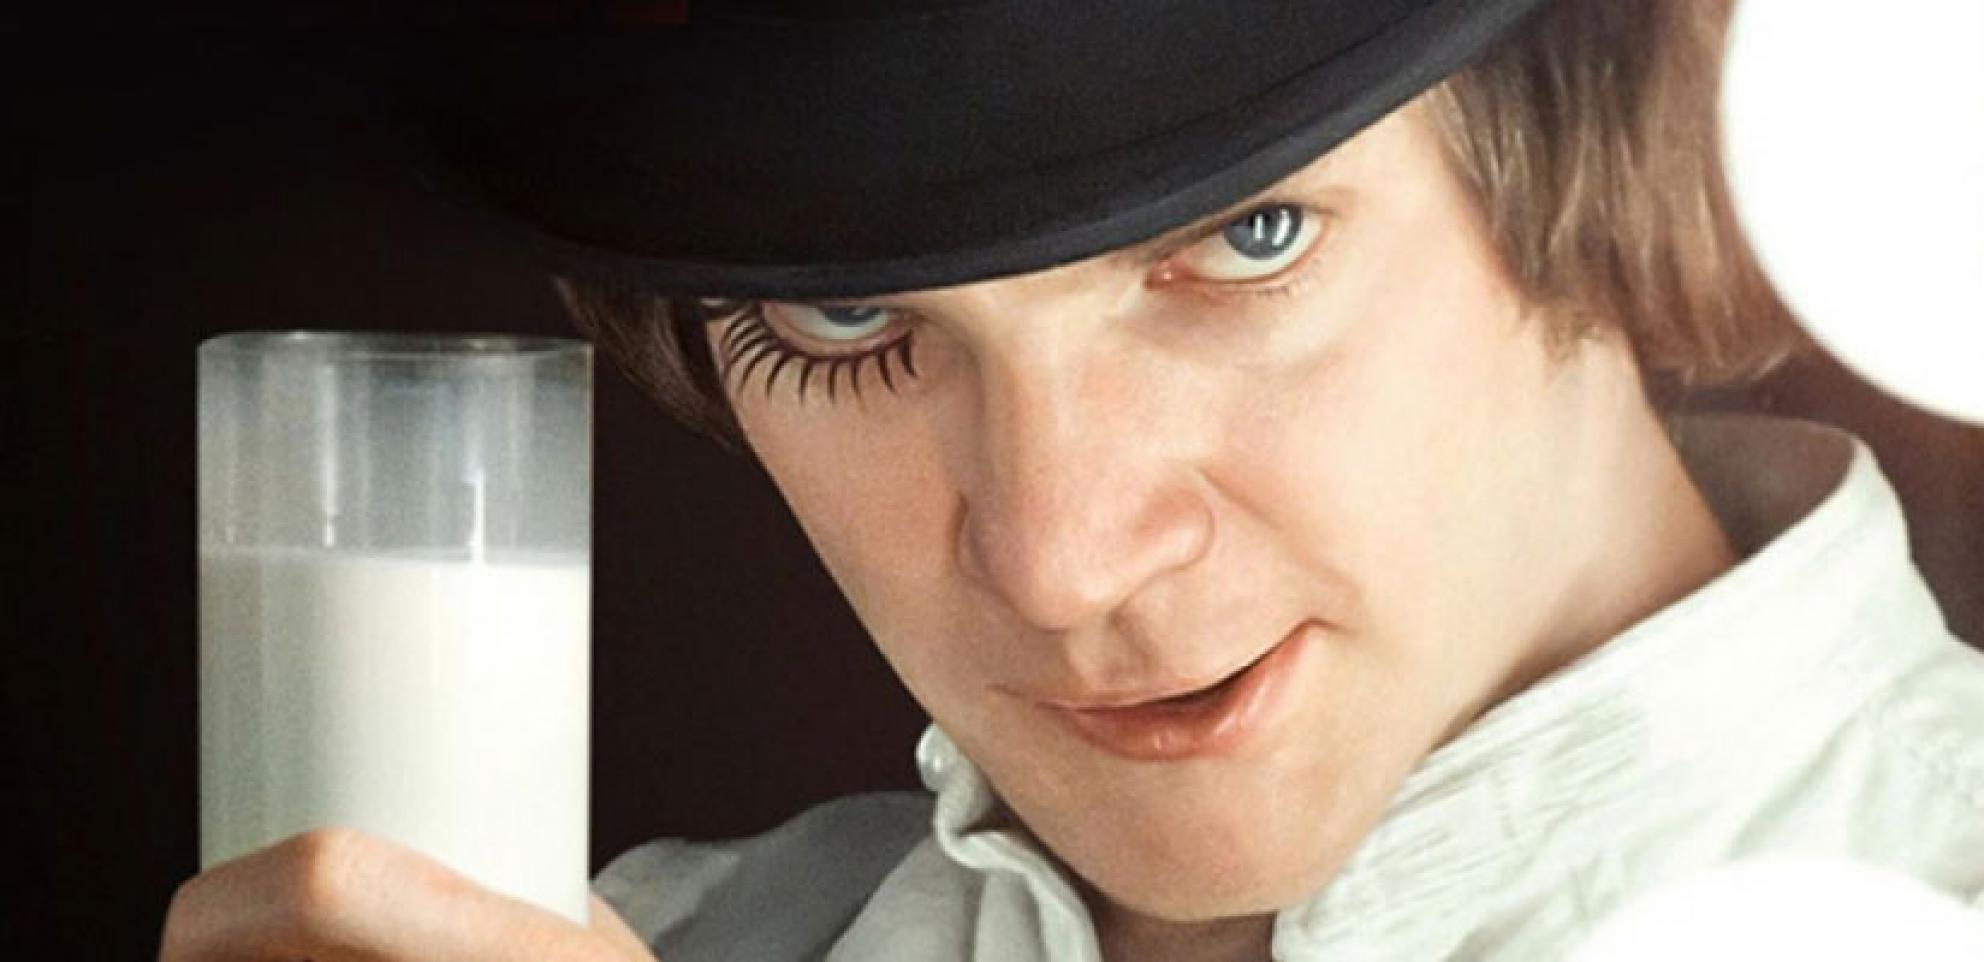 A man in a bowler hat with one false eyelash raises a glass of milk